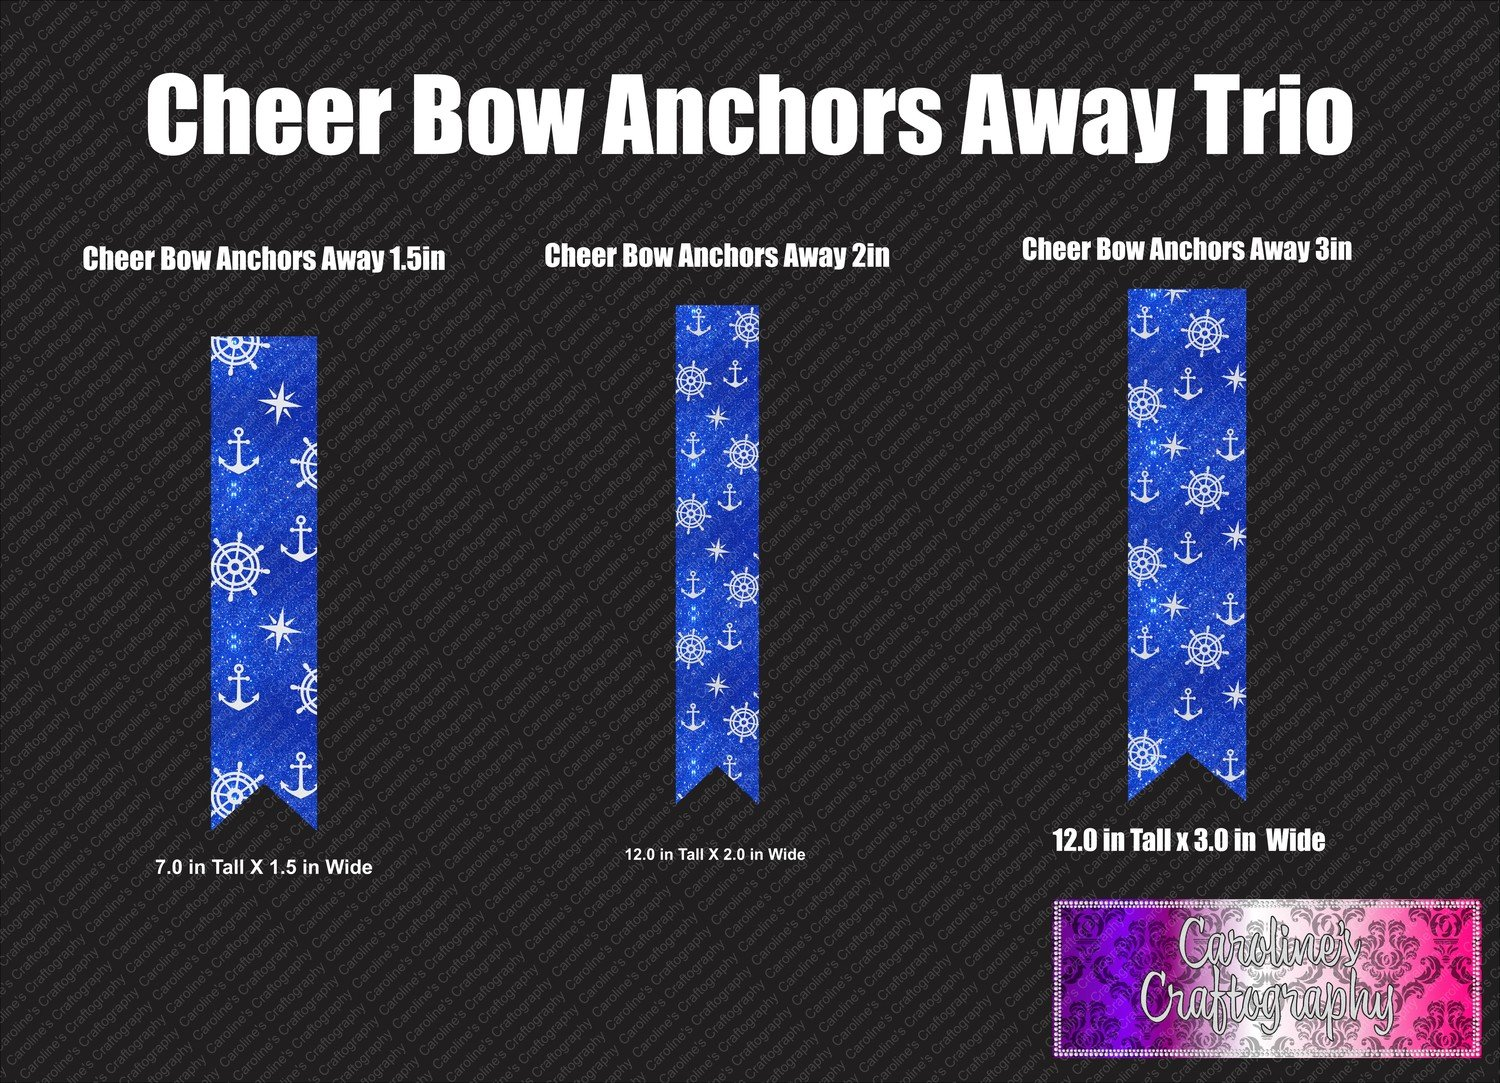 Anchors Away Cheer Bow Trio Vinyl